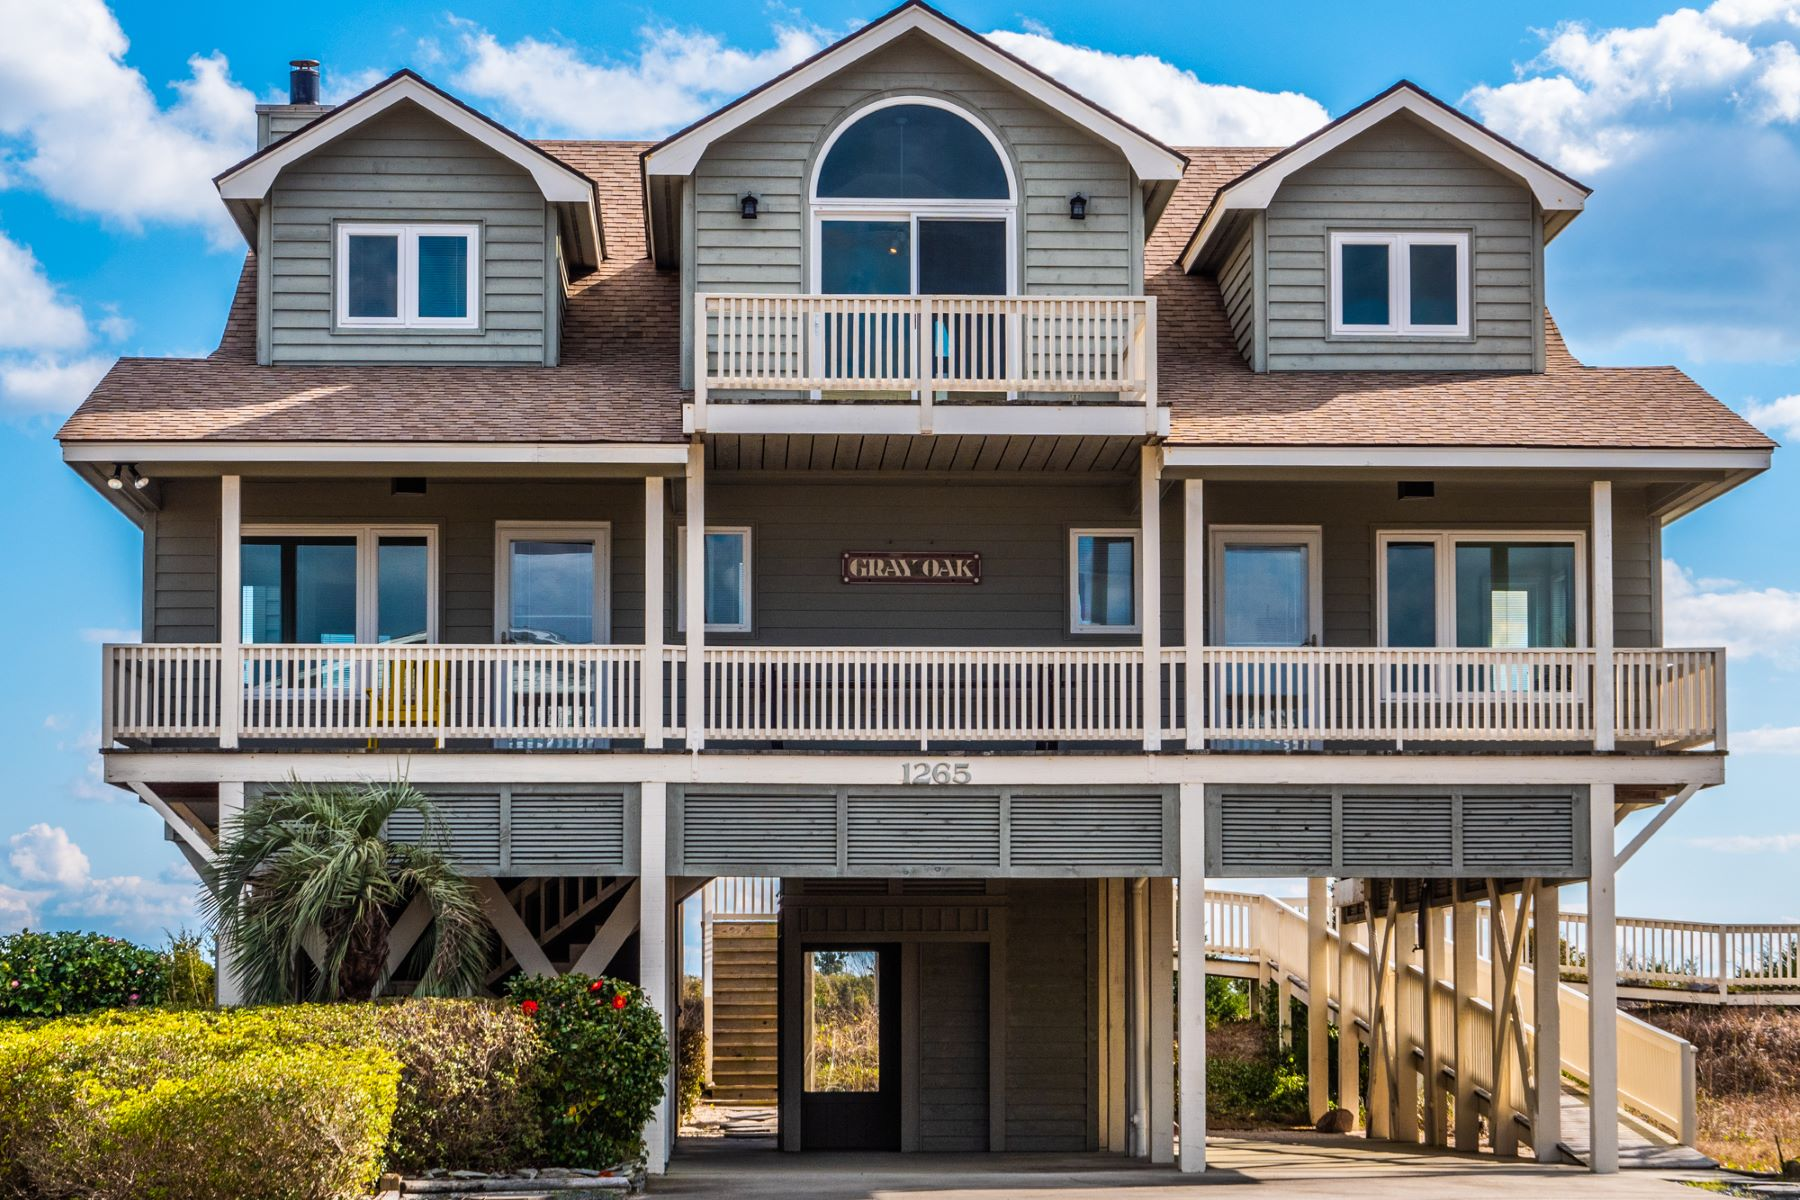 Single Family Homes for Sale at Ocean Front With Porches Galore 1265 Ocean Boulevard W Holden Beach, North Carolina 28462 United States